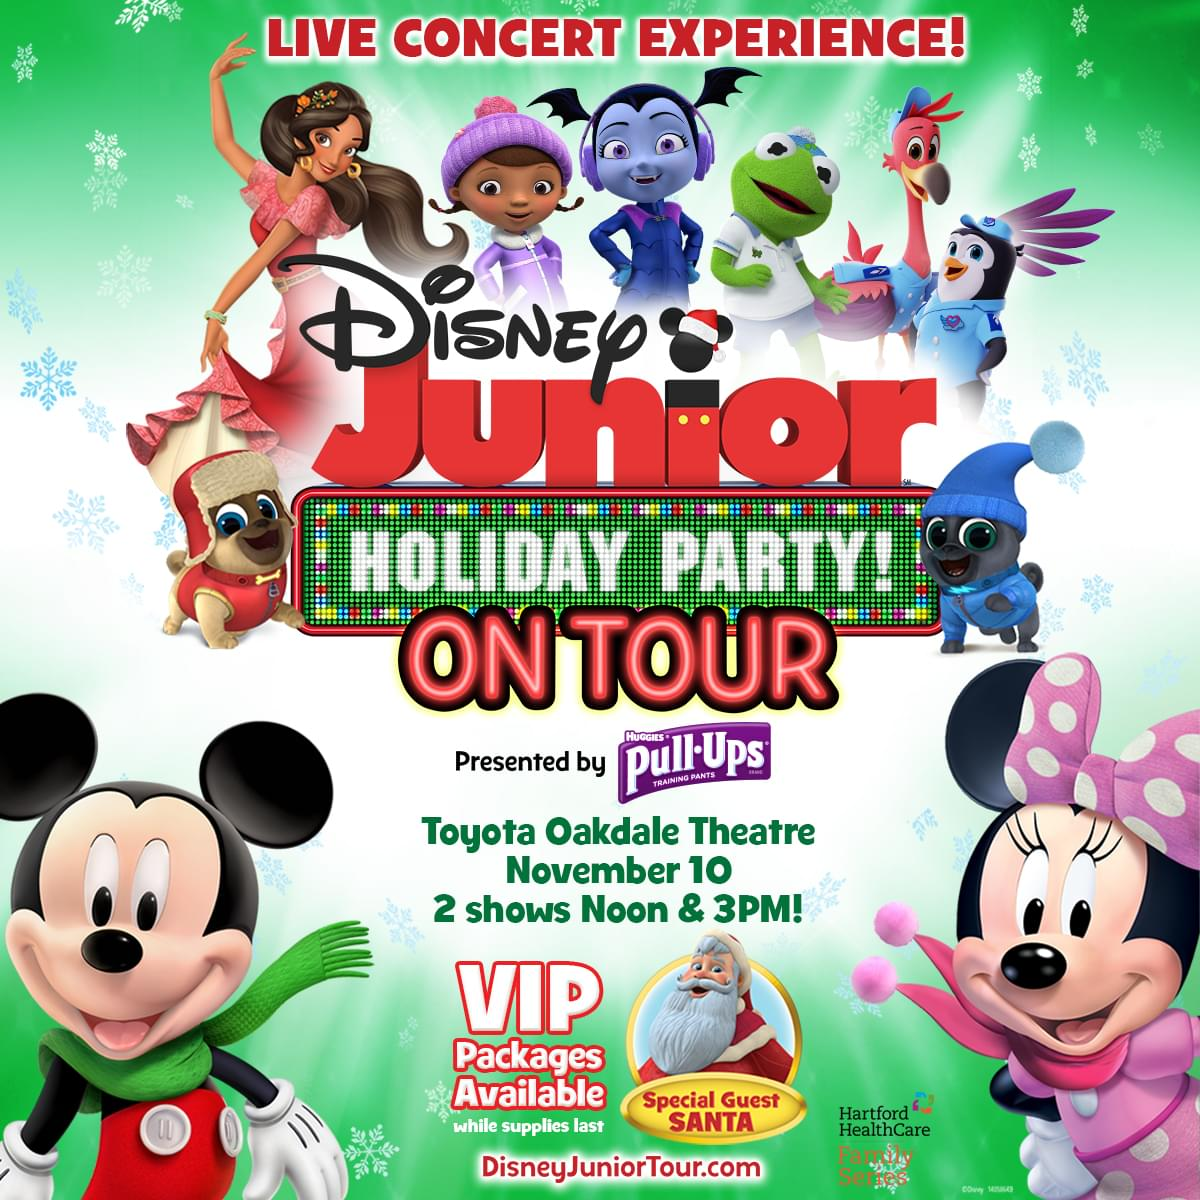 Enter to win tickets to Disney Jr Holiday Party on Tour